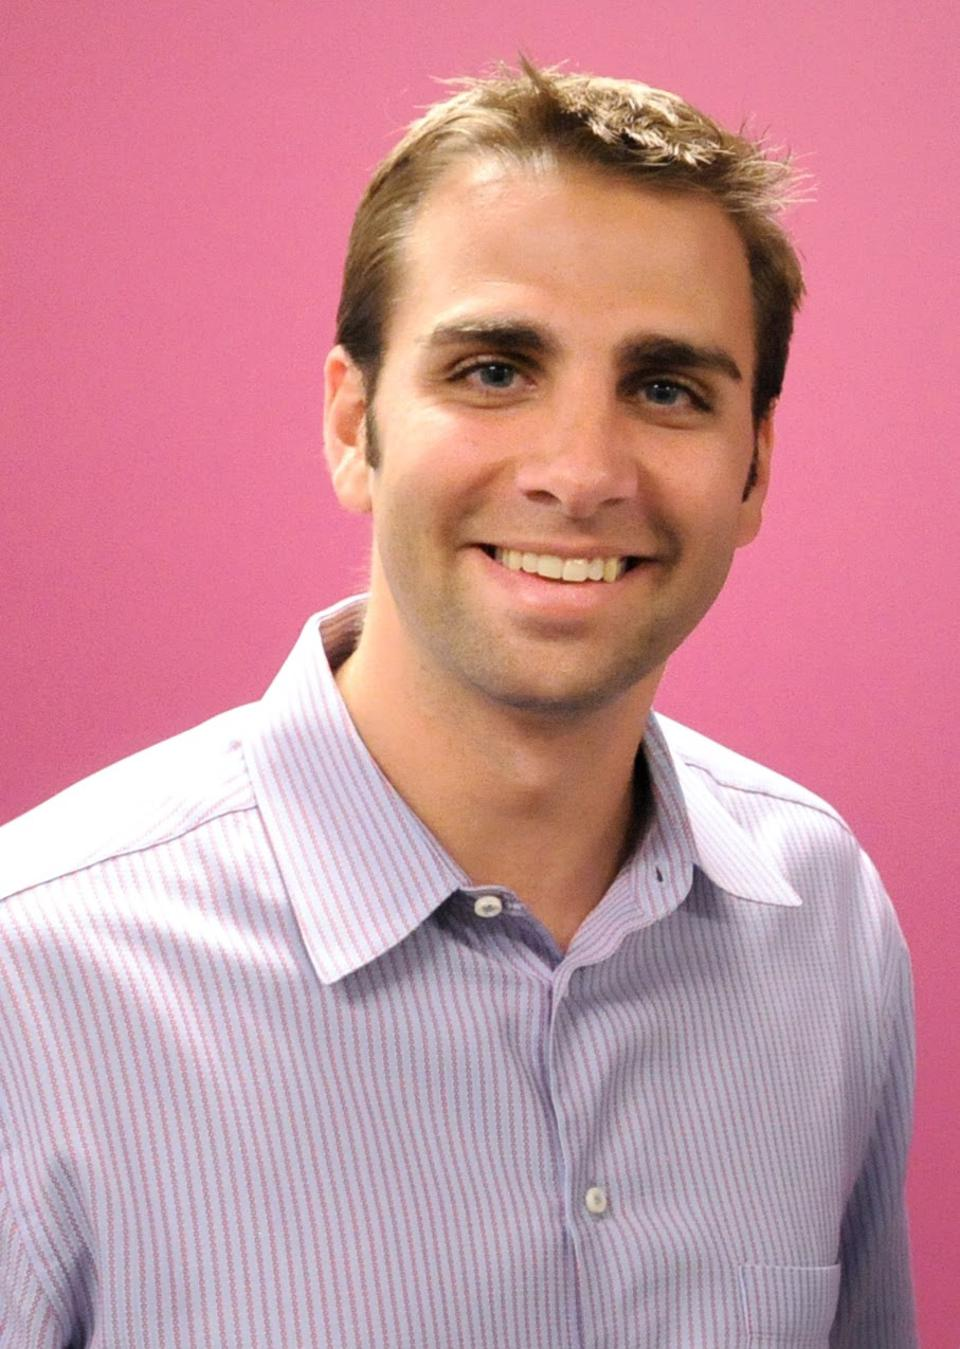 Genomatica co-founder and CEO Christophe Schilling in a collared shirt, smiling.